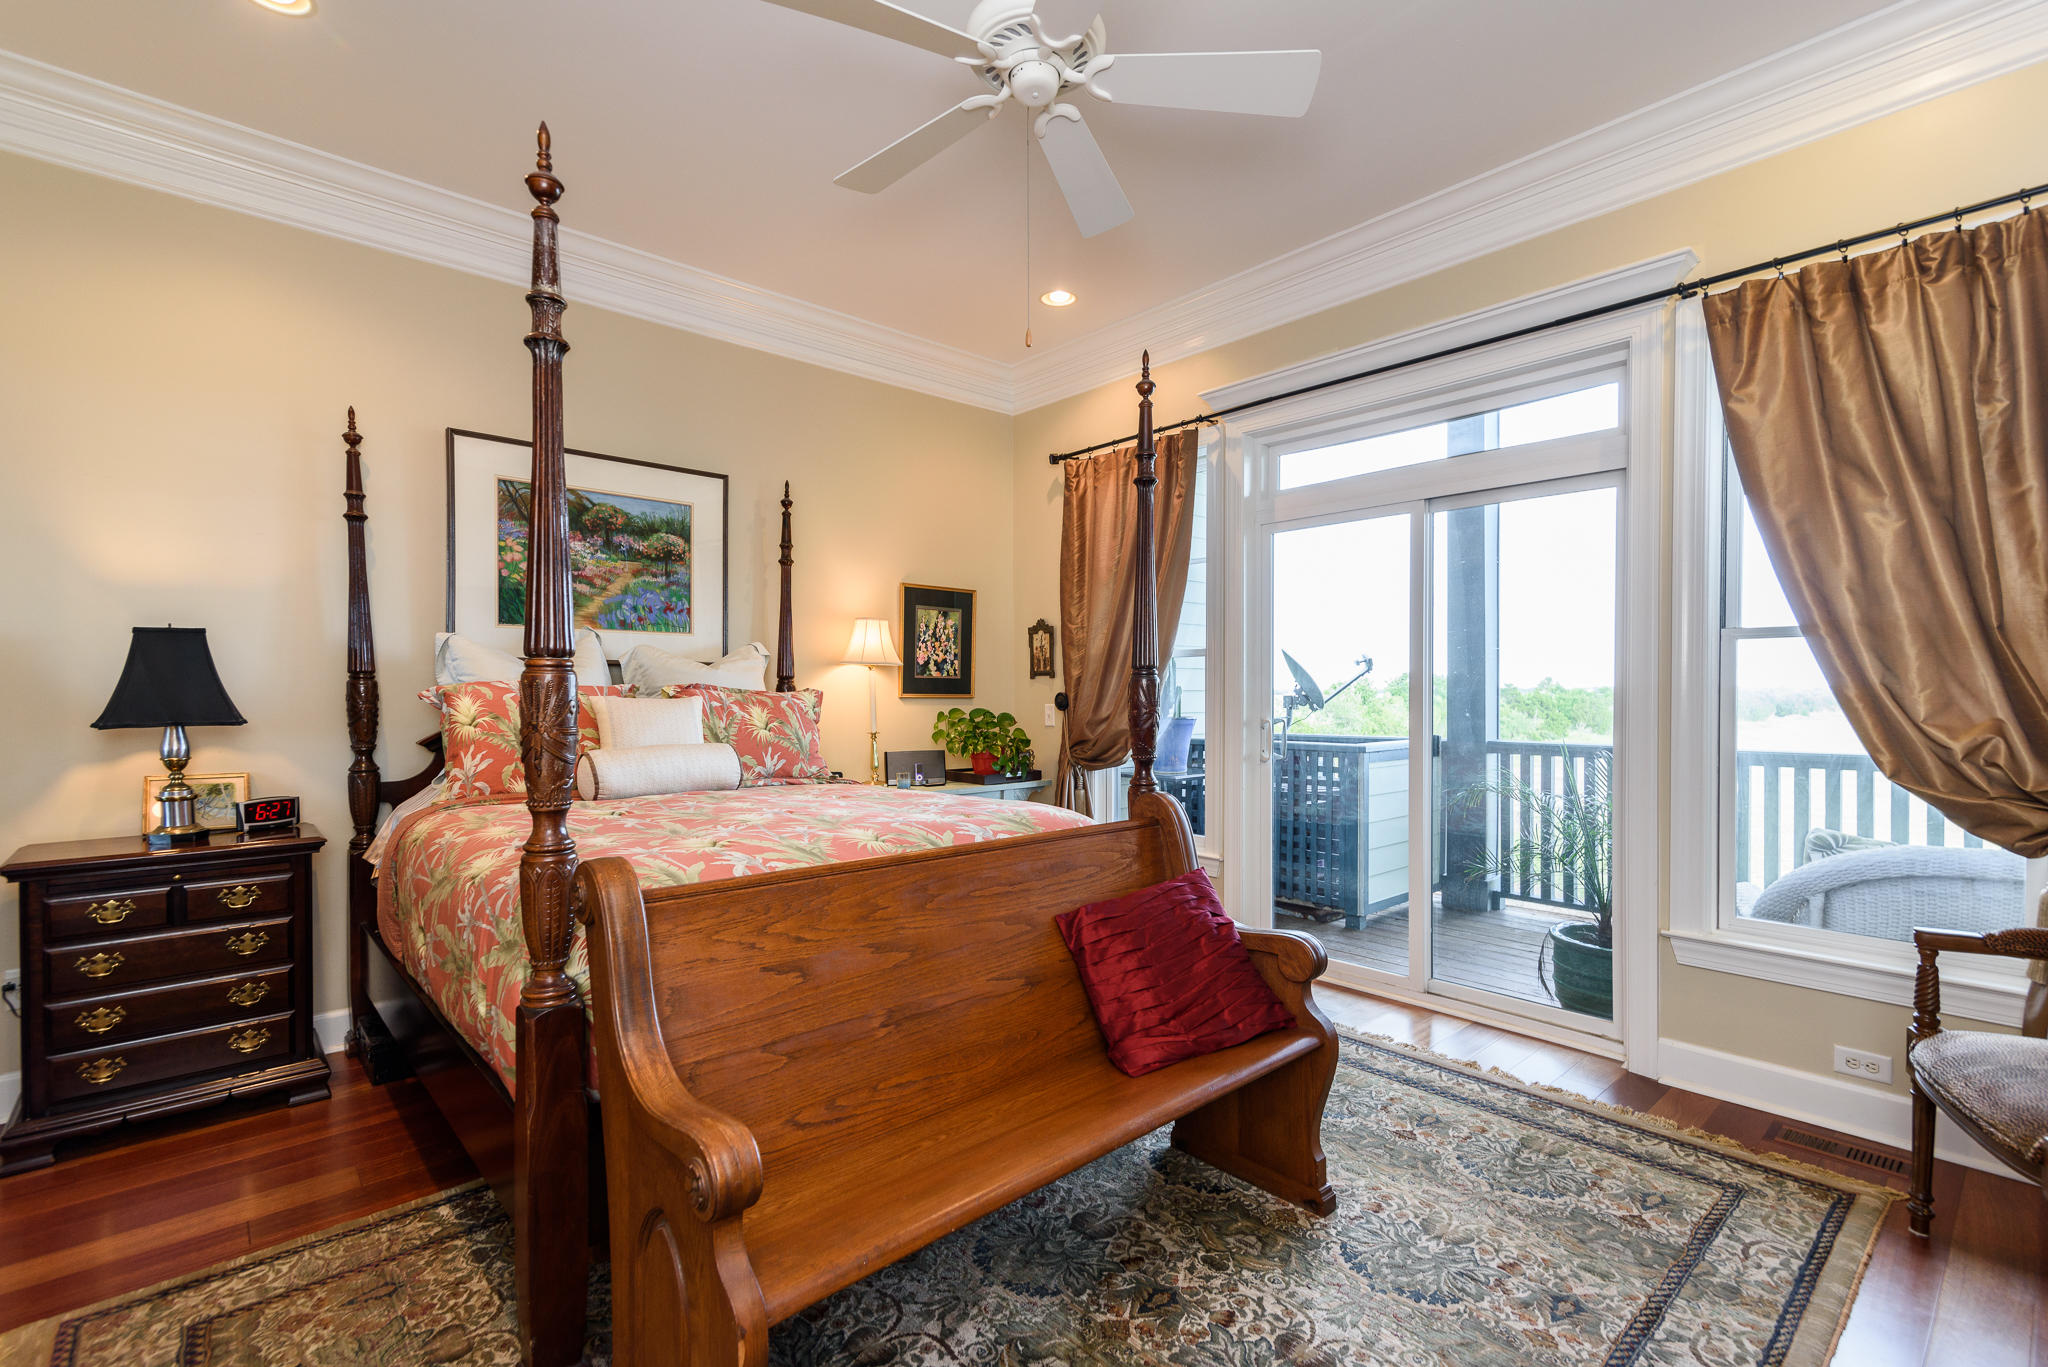 Sawyer's Landing Homes For Sale - 977 Cove Bay, Mount Pleasant, SC - 19